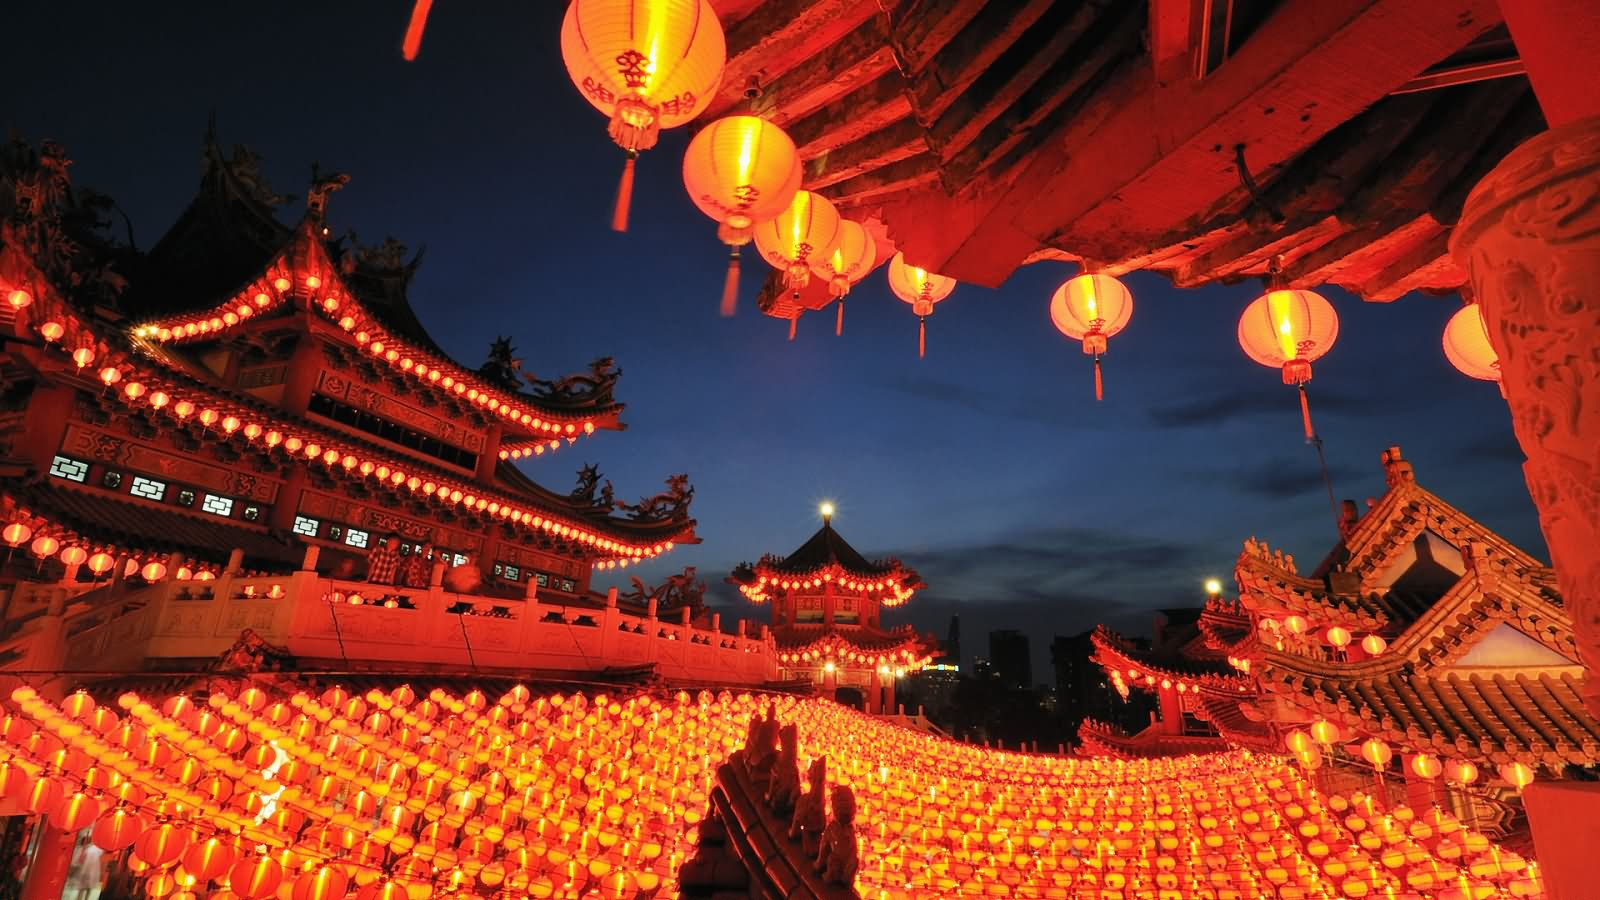 Lanterns Lit Up At Thean Hou Temple Night Picture